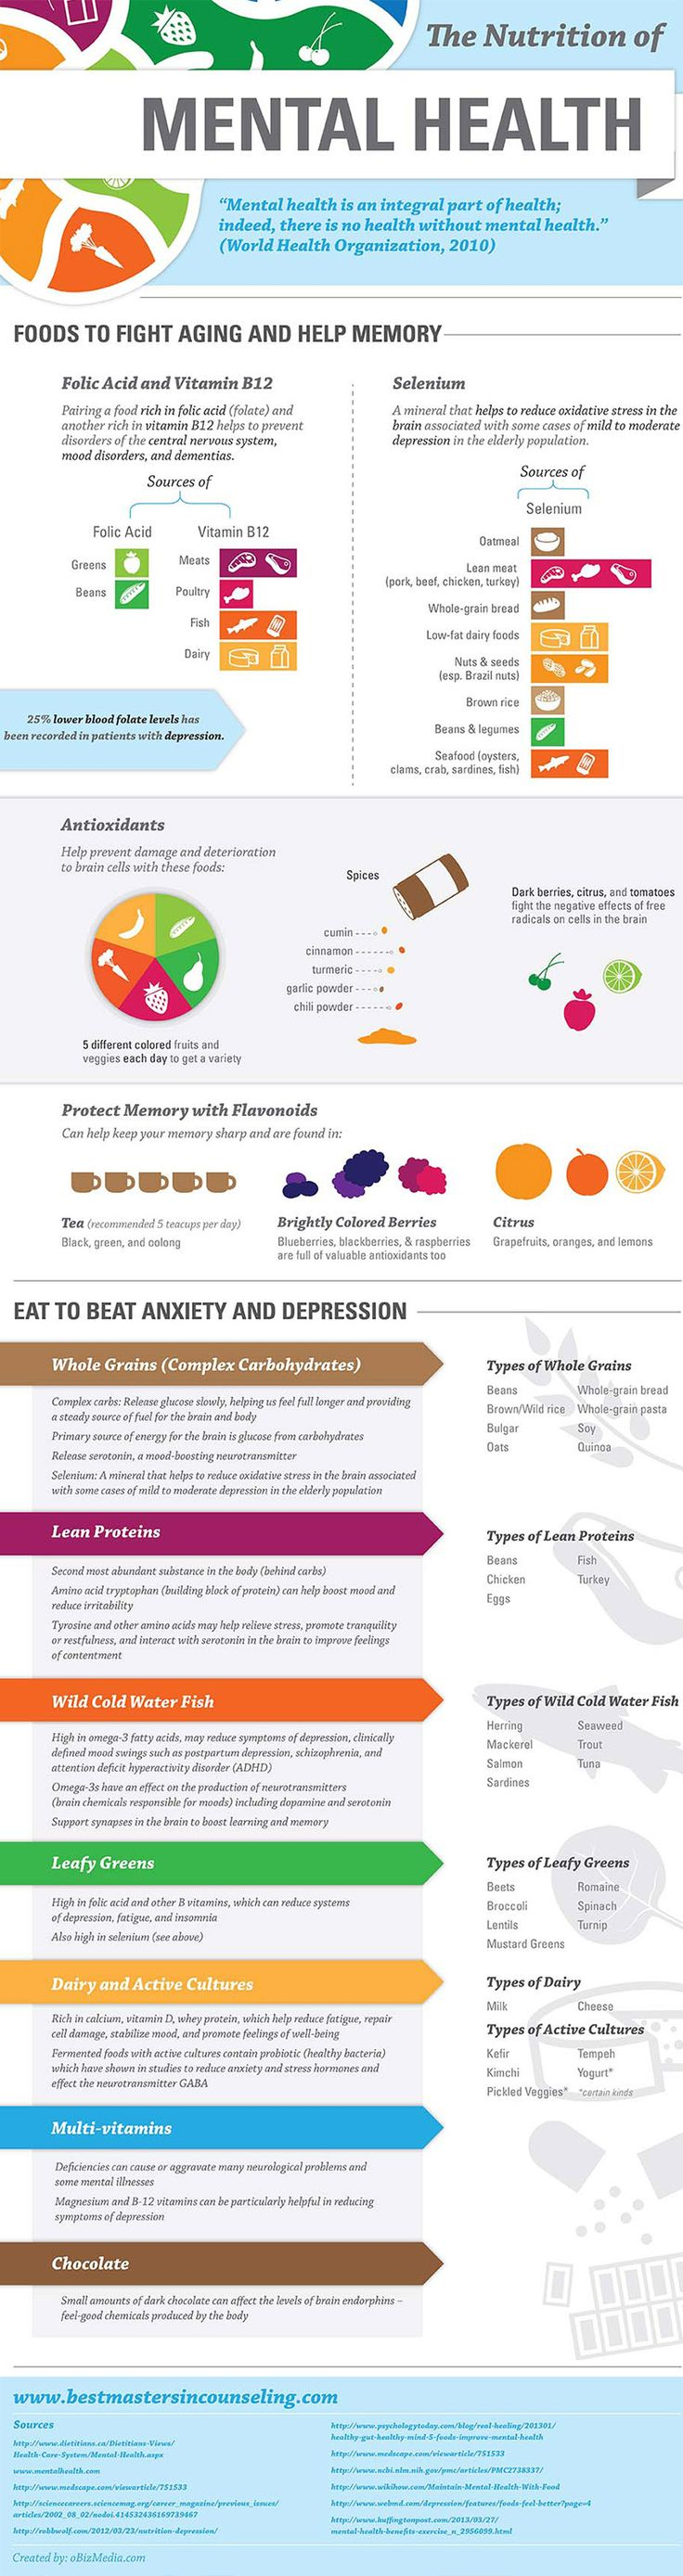 """7 Foods that Relieve Anxiety and Depression Your diet – what you eat, when and how much – can definitely affect both how you look and FEEL! The right foods, herbs and vitamins can cause you to feel energized, confident, happy and help you think clearly. Or… They can cause you to feel #anxiety, #panicattacks, """"moodiness"""", decreased energy levels and even cause #depression. Make sure you read the """"Additional Suggestions"""" at the link for 2 additional methods."""